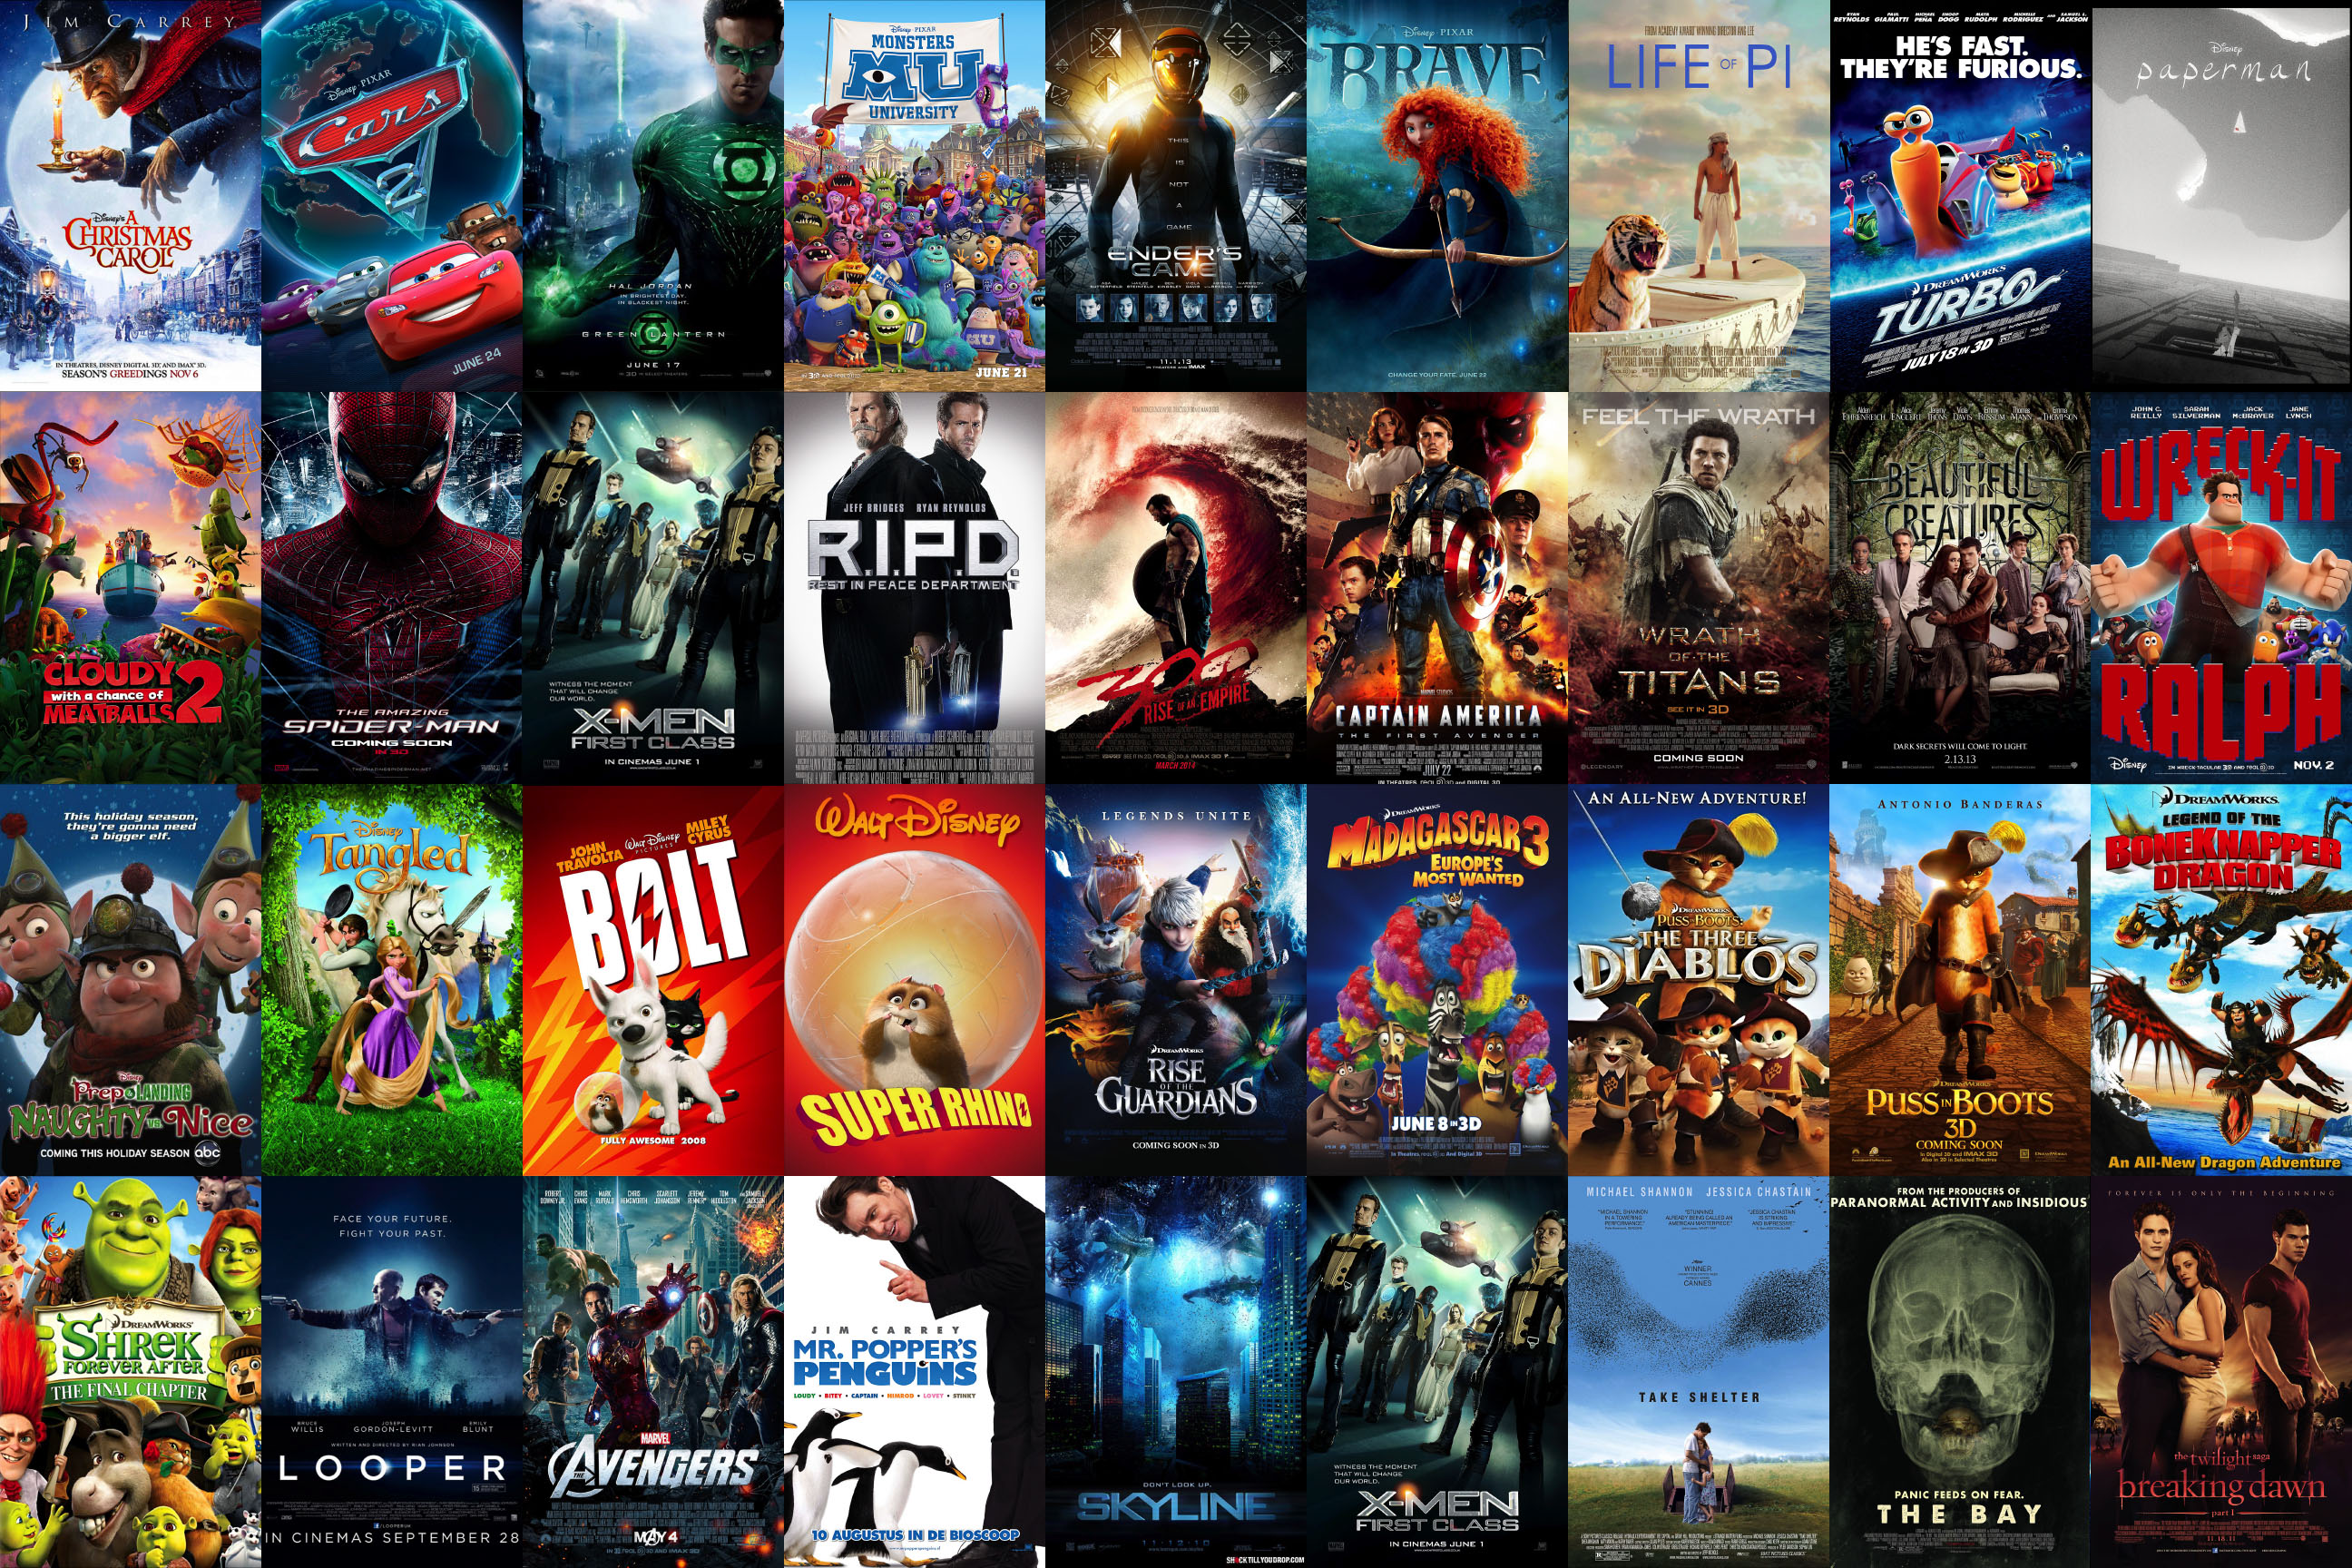 Popular culture and feature films